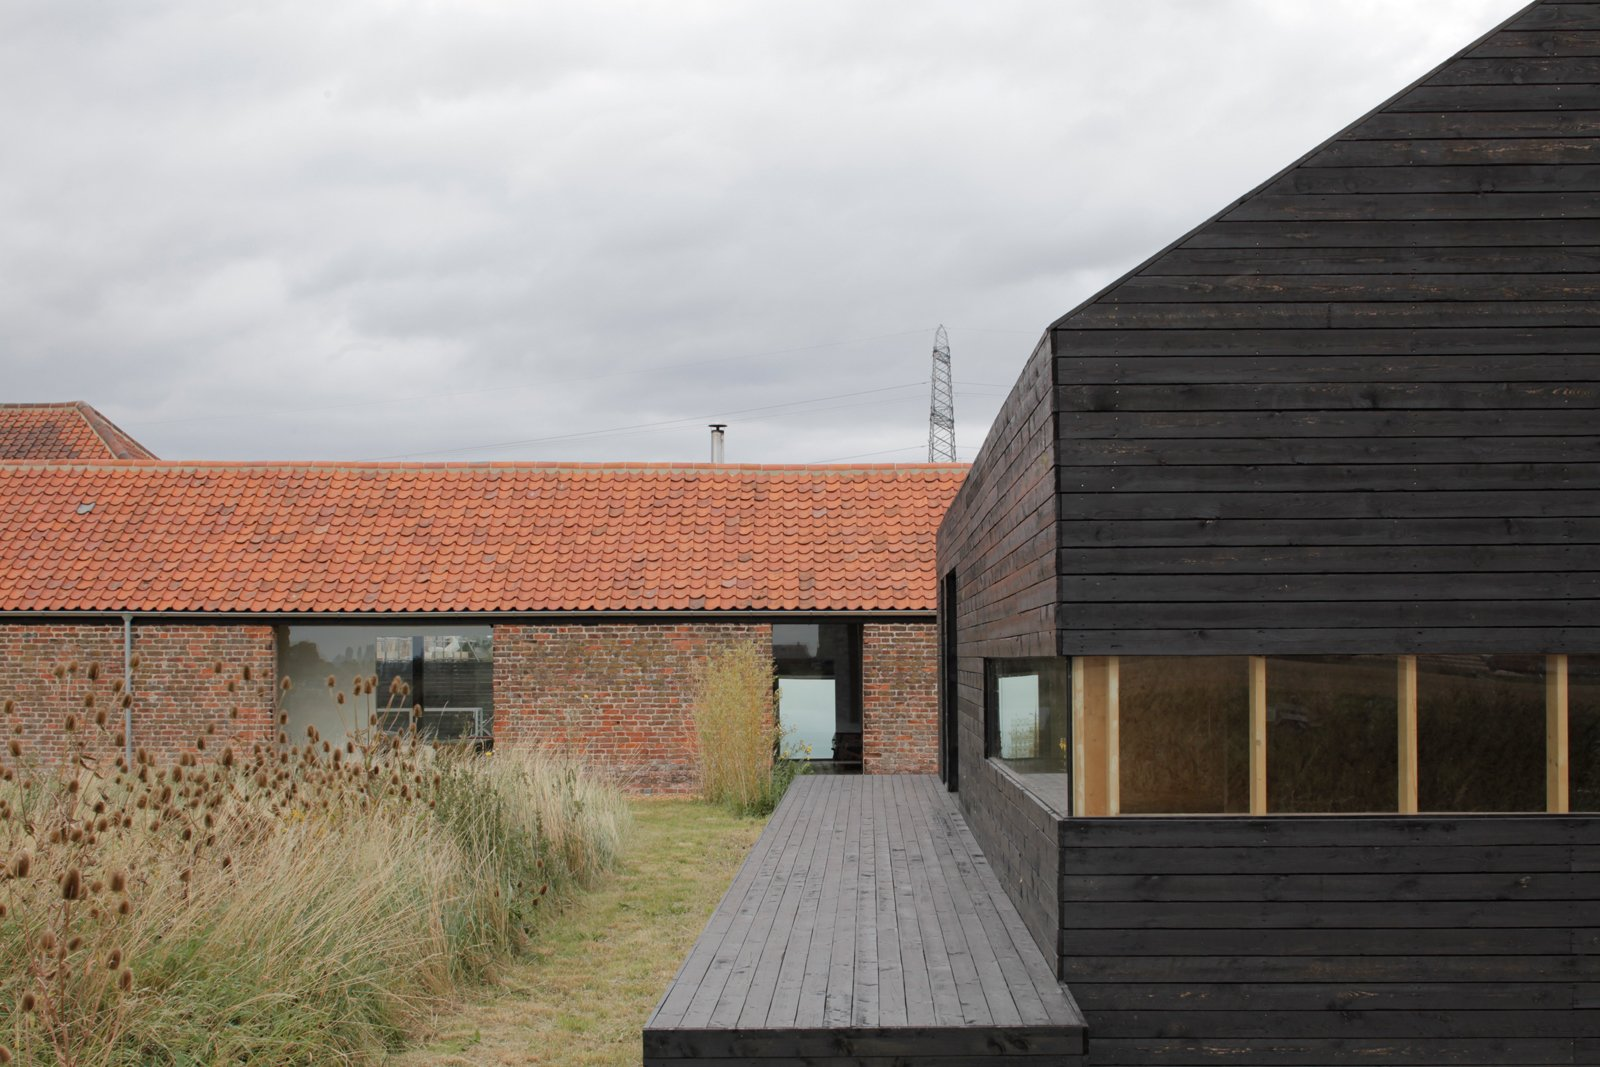 For a bit of elevation in the overwhelmingly horizontal compound, step onto the deck of the Stealth Barn. A strip of mowed grass delineates a path between the two structures; otherwise the grasses grow wild.  Composition by Lara Deam from A Pair of English Barns Hide Unabashedly Bold and Budget-Friendly Minimalist Interiors